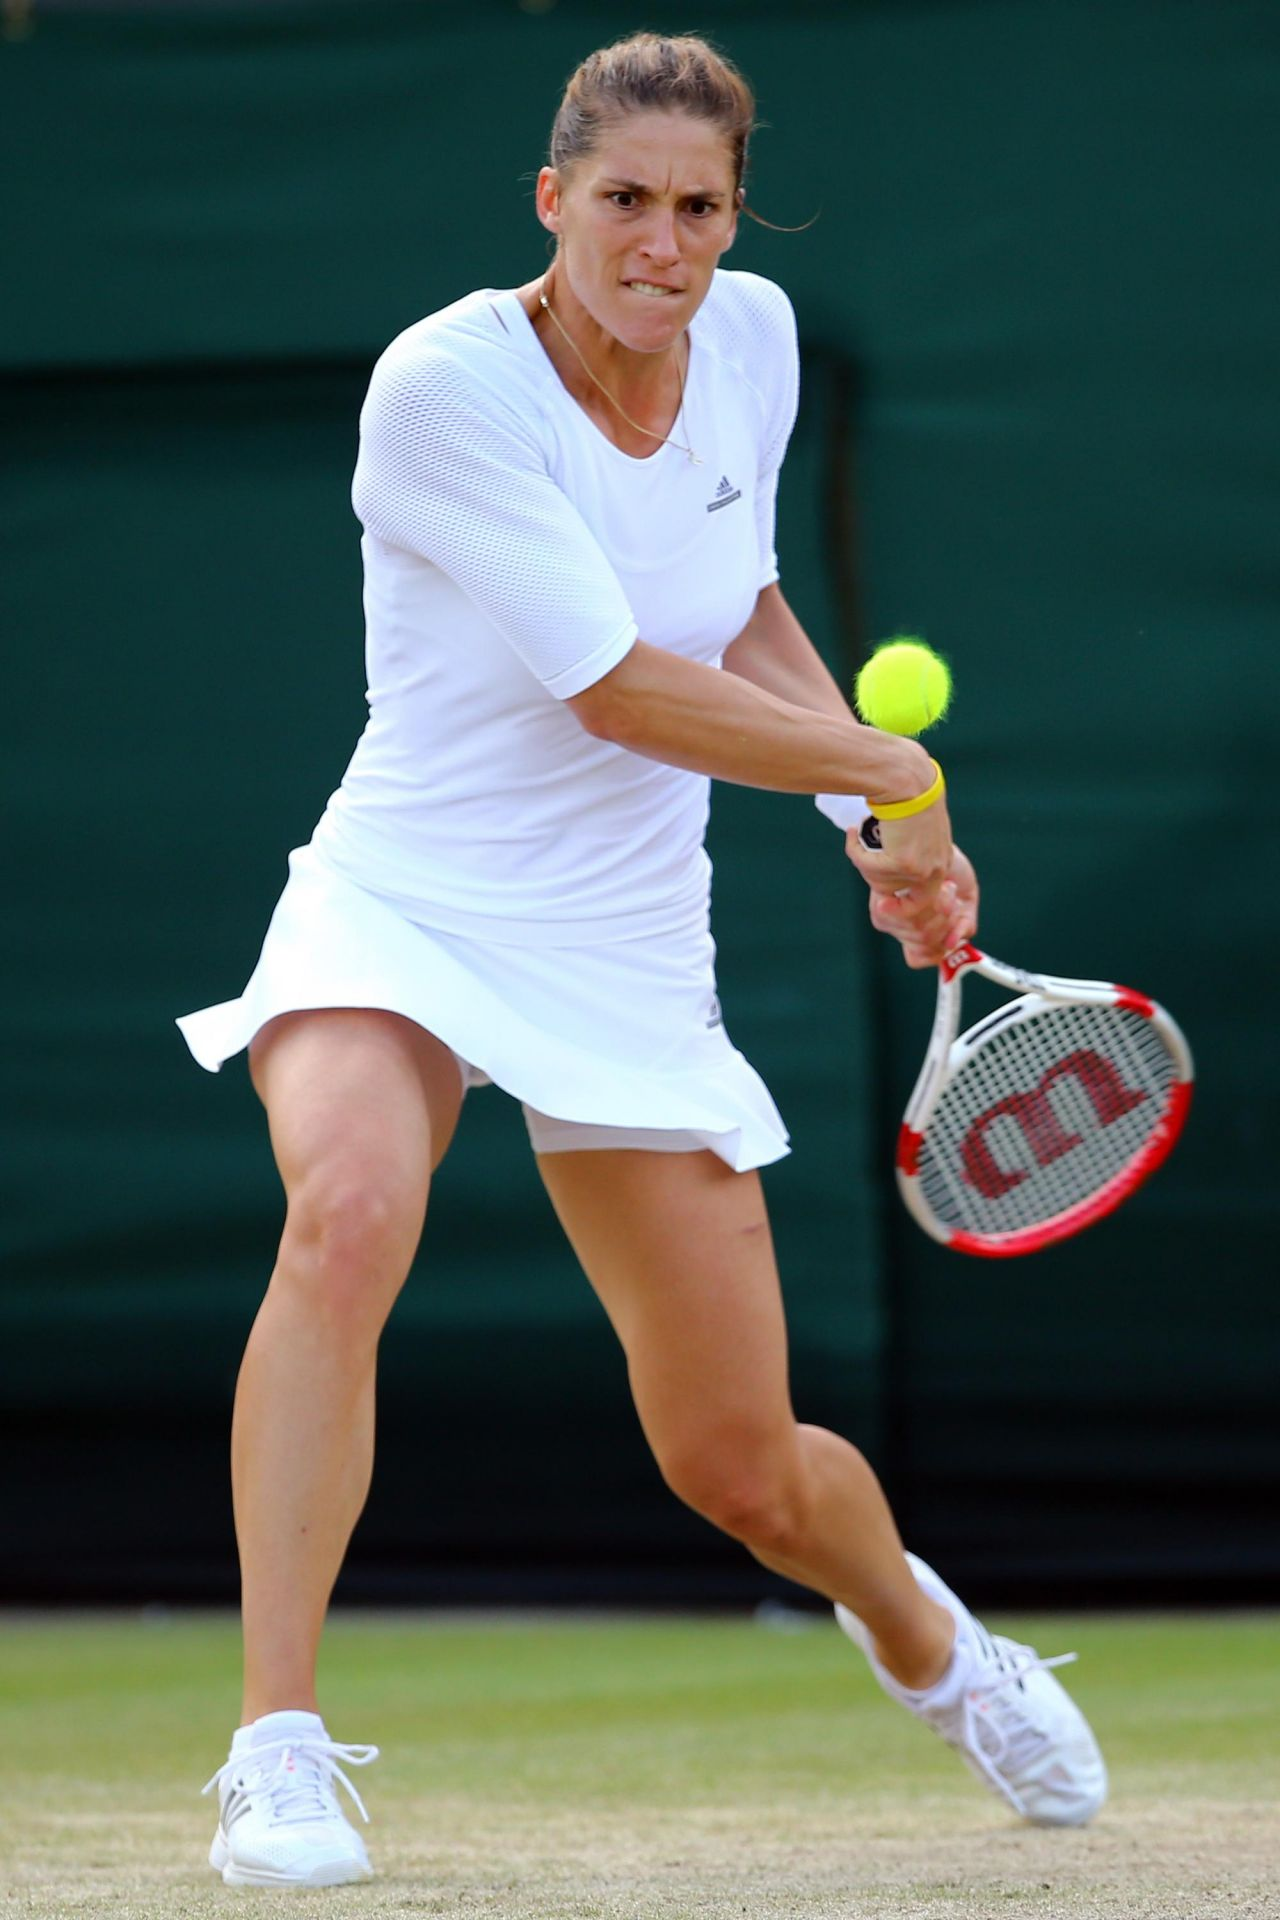 Andrea Petkovic – Wimbledon Tennis Championships 2014 – 3rd Round